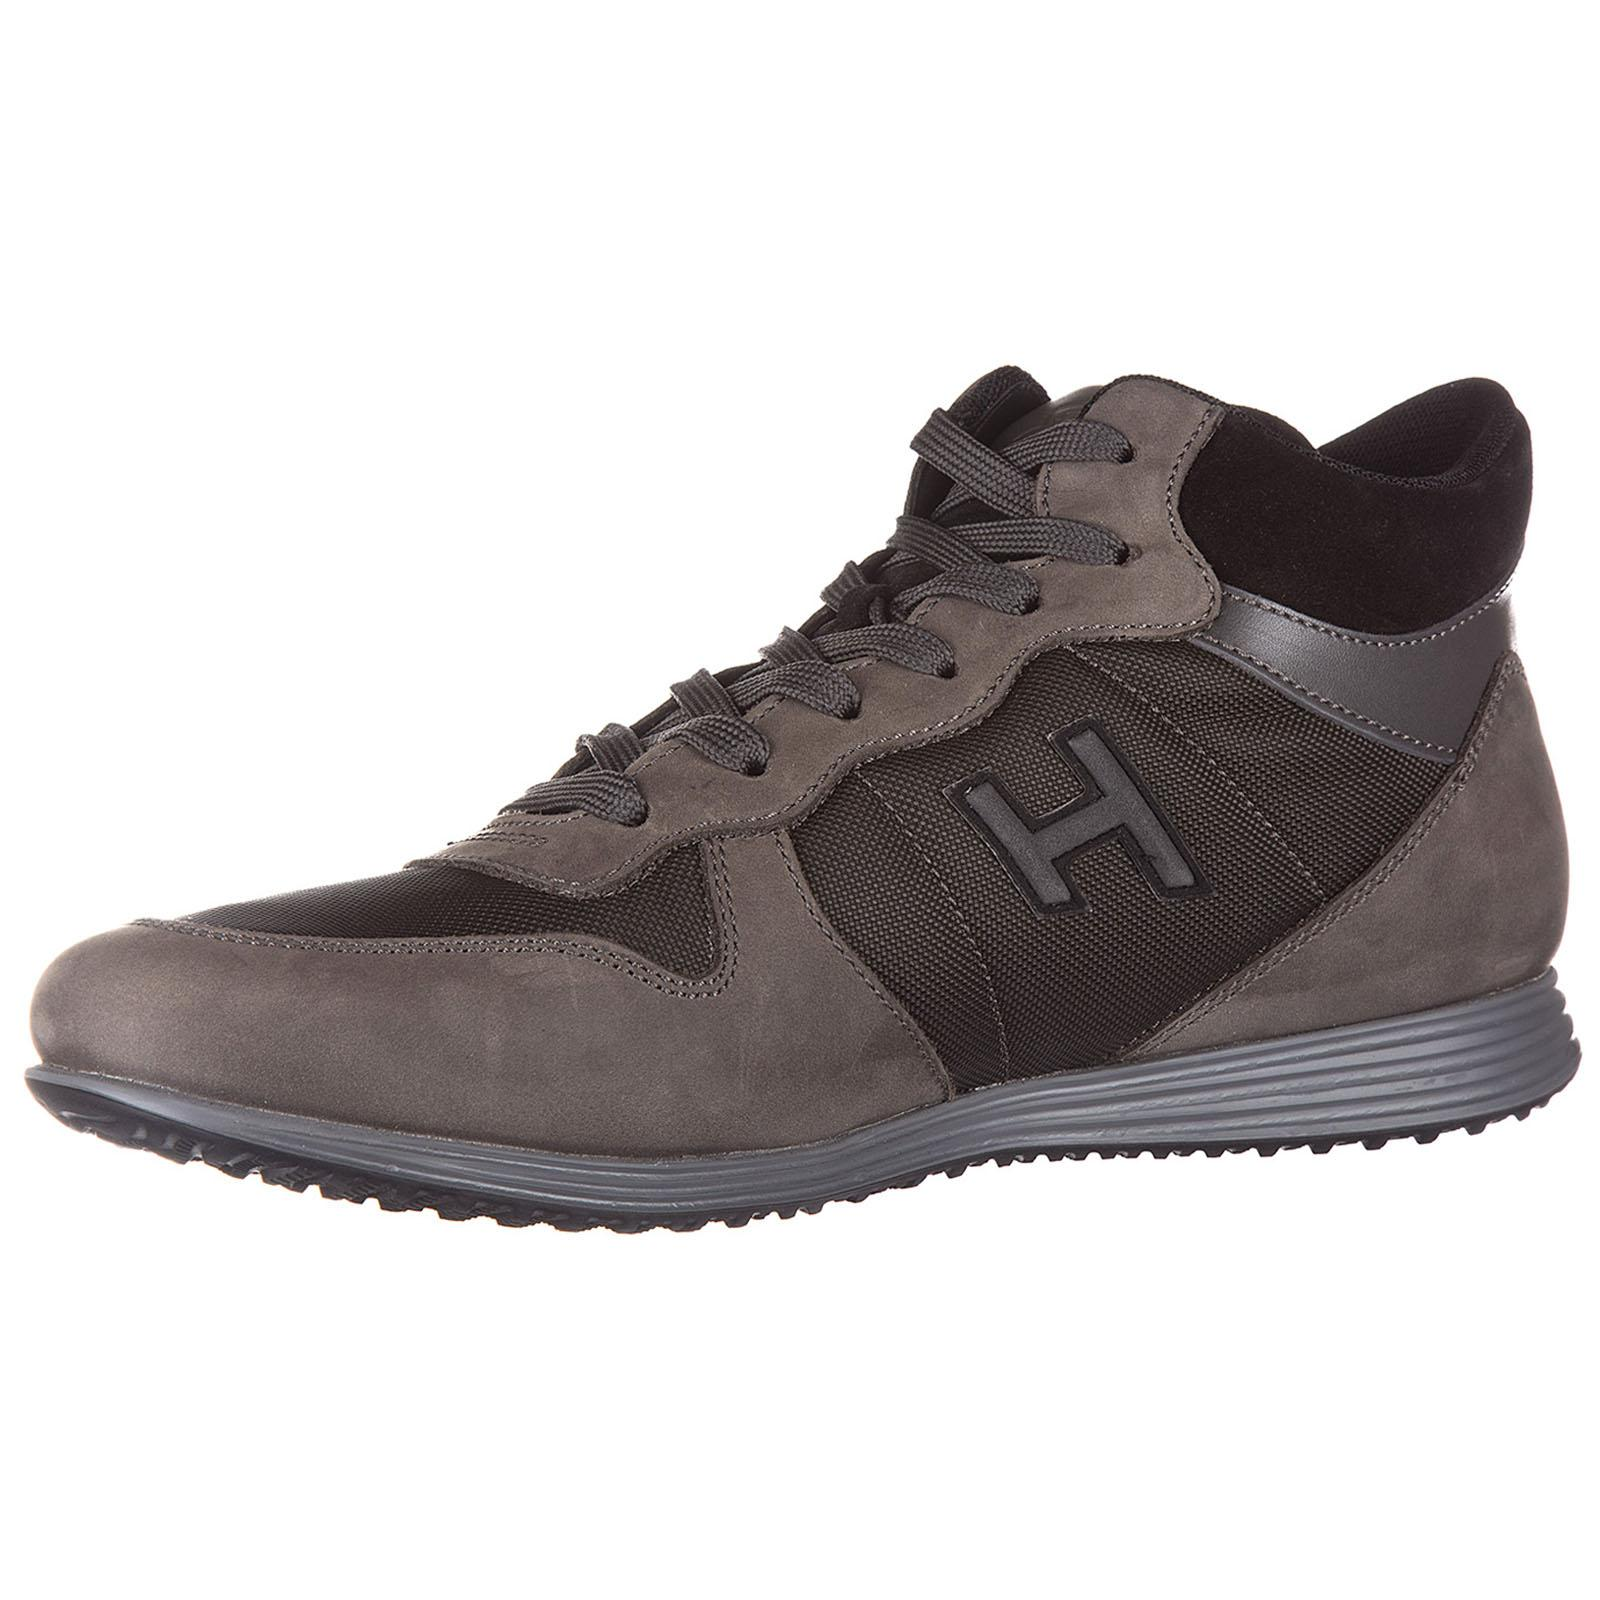 Hogan Shoes Leather Trainers Sneakers Mid Cut H205 Olympia H ...